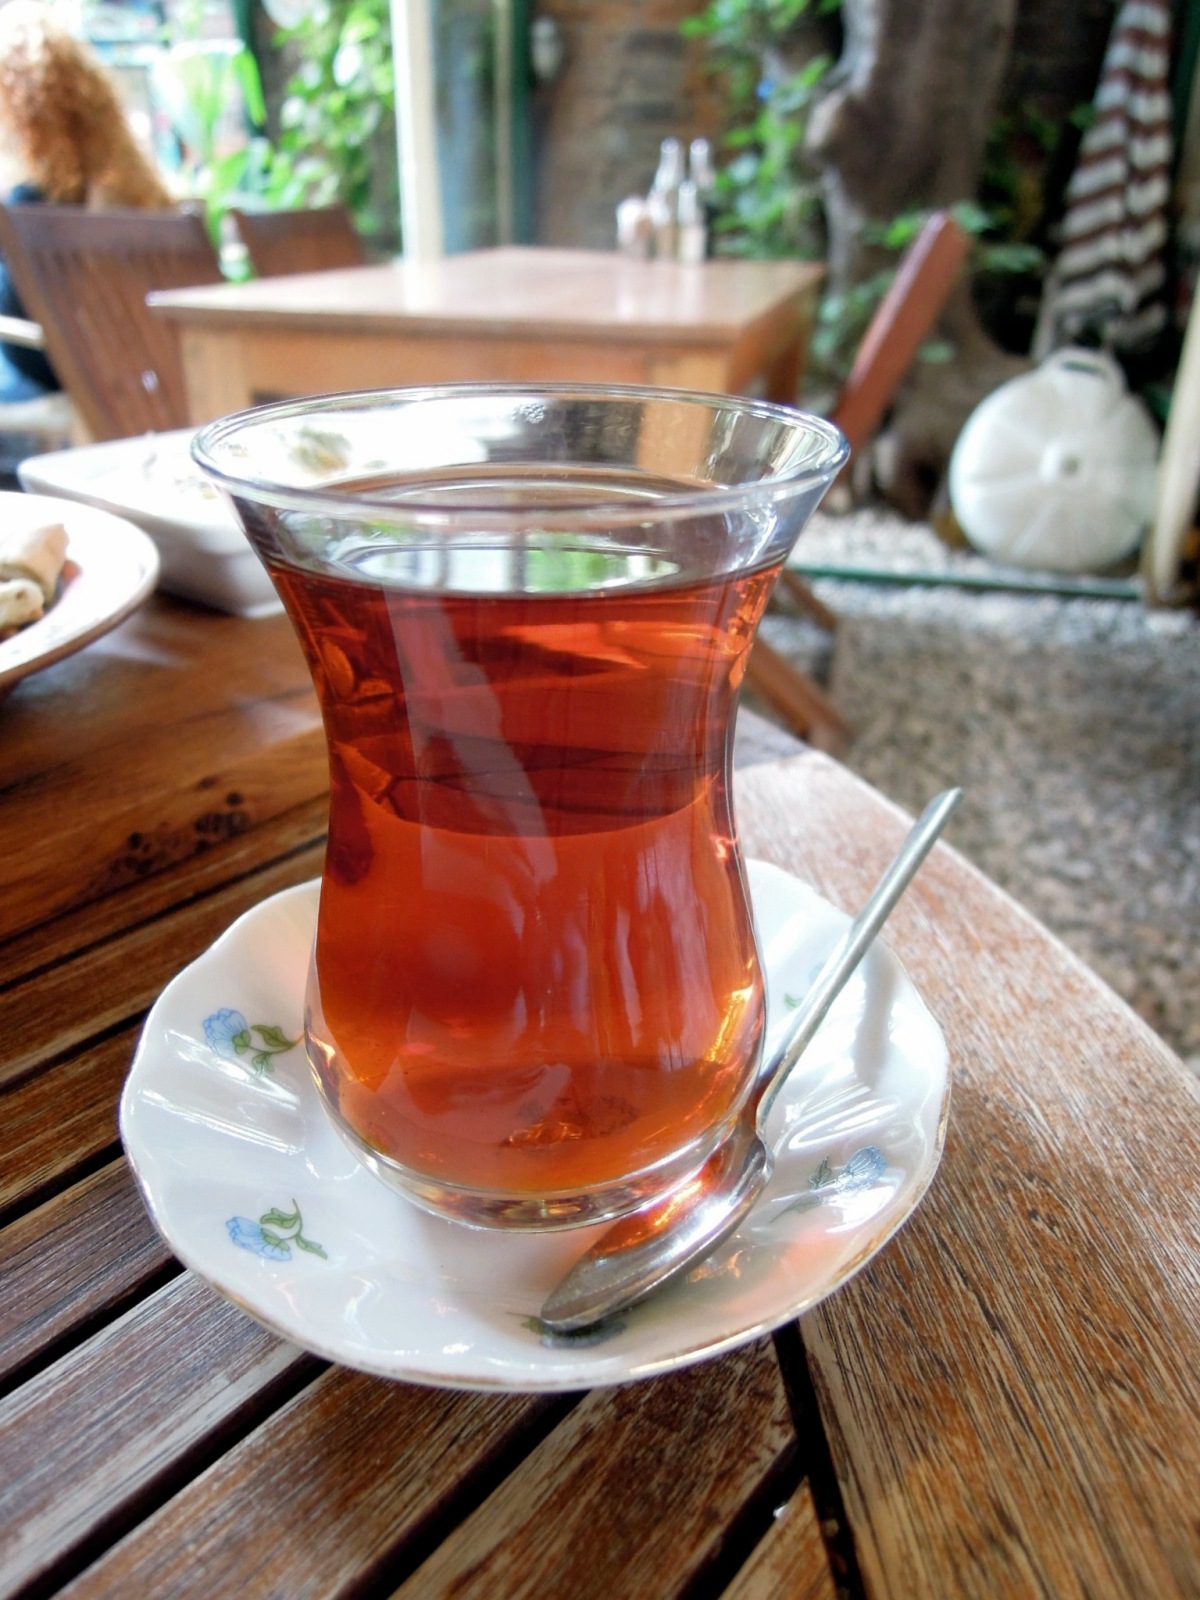 Tea in tulip-shaped glass